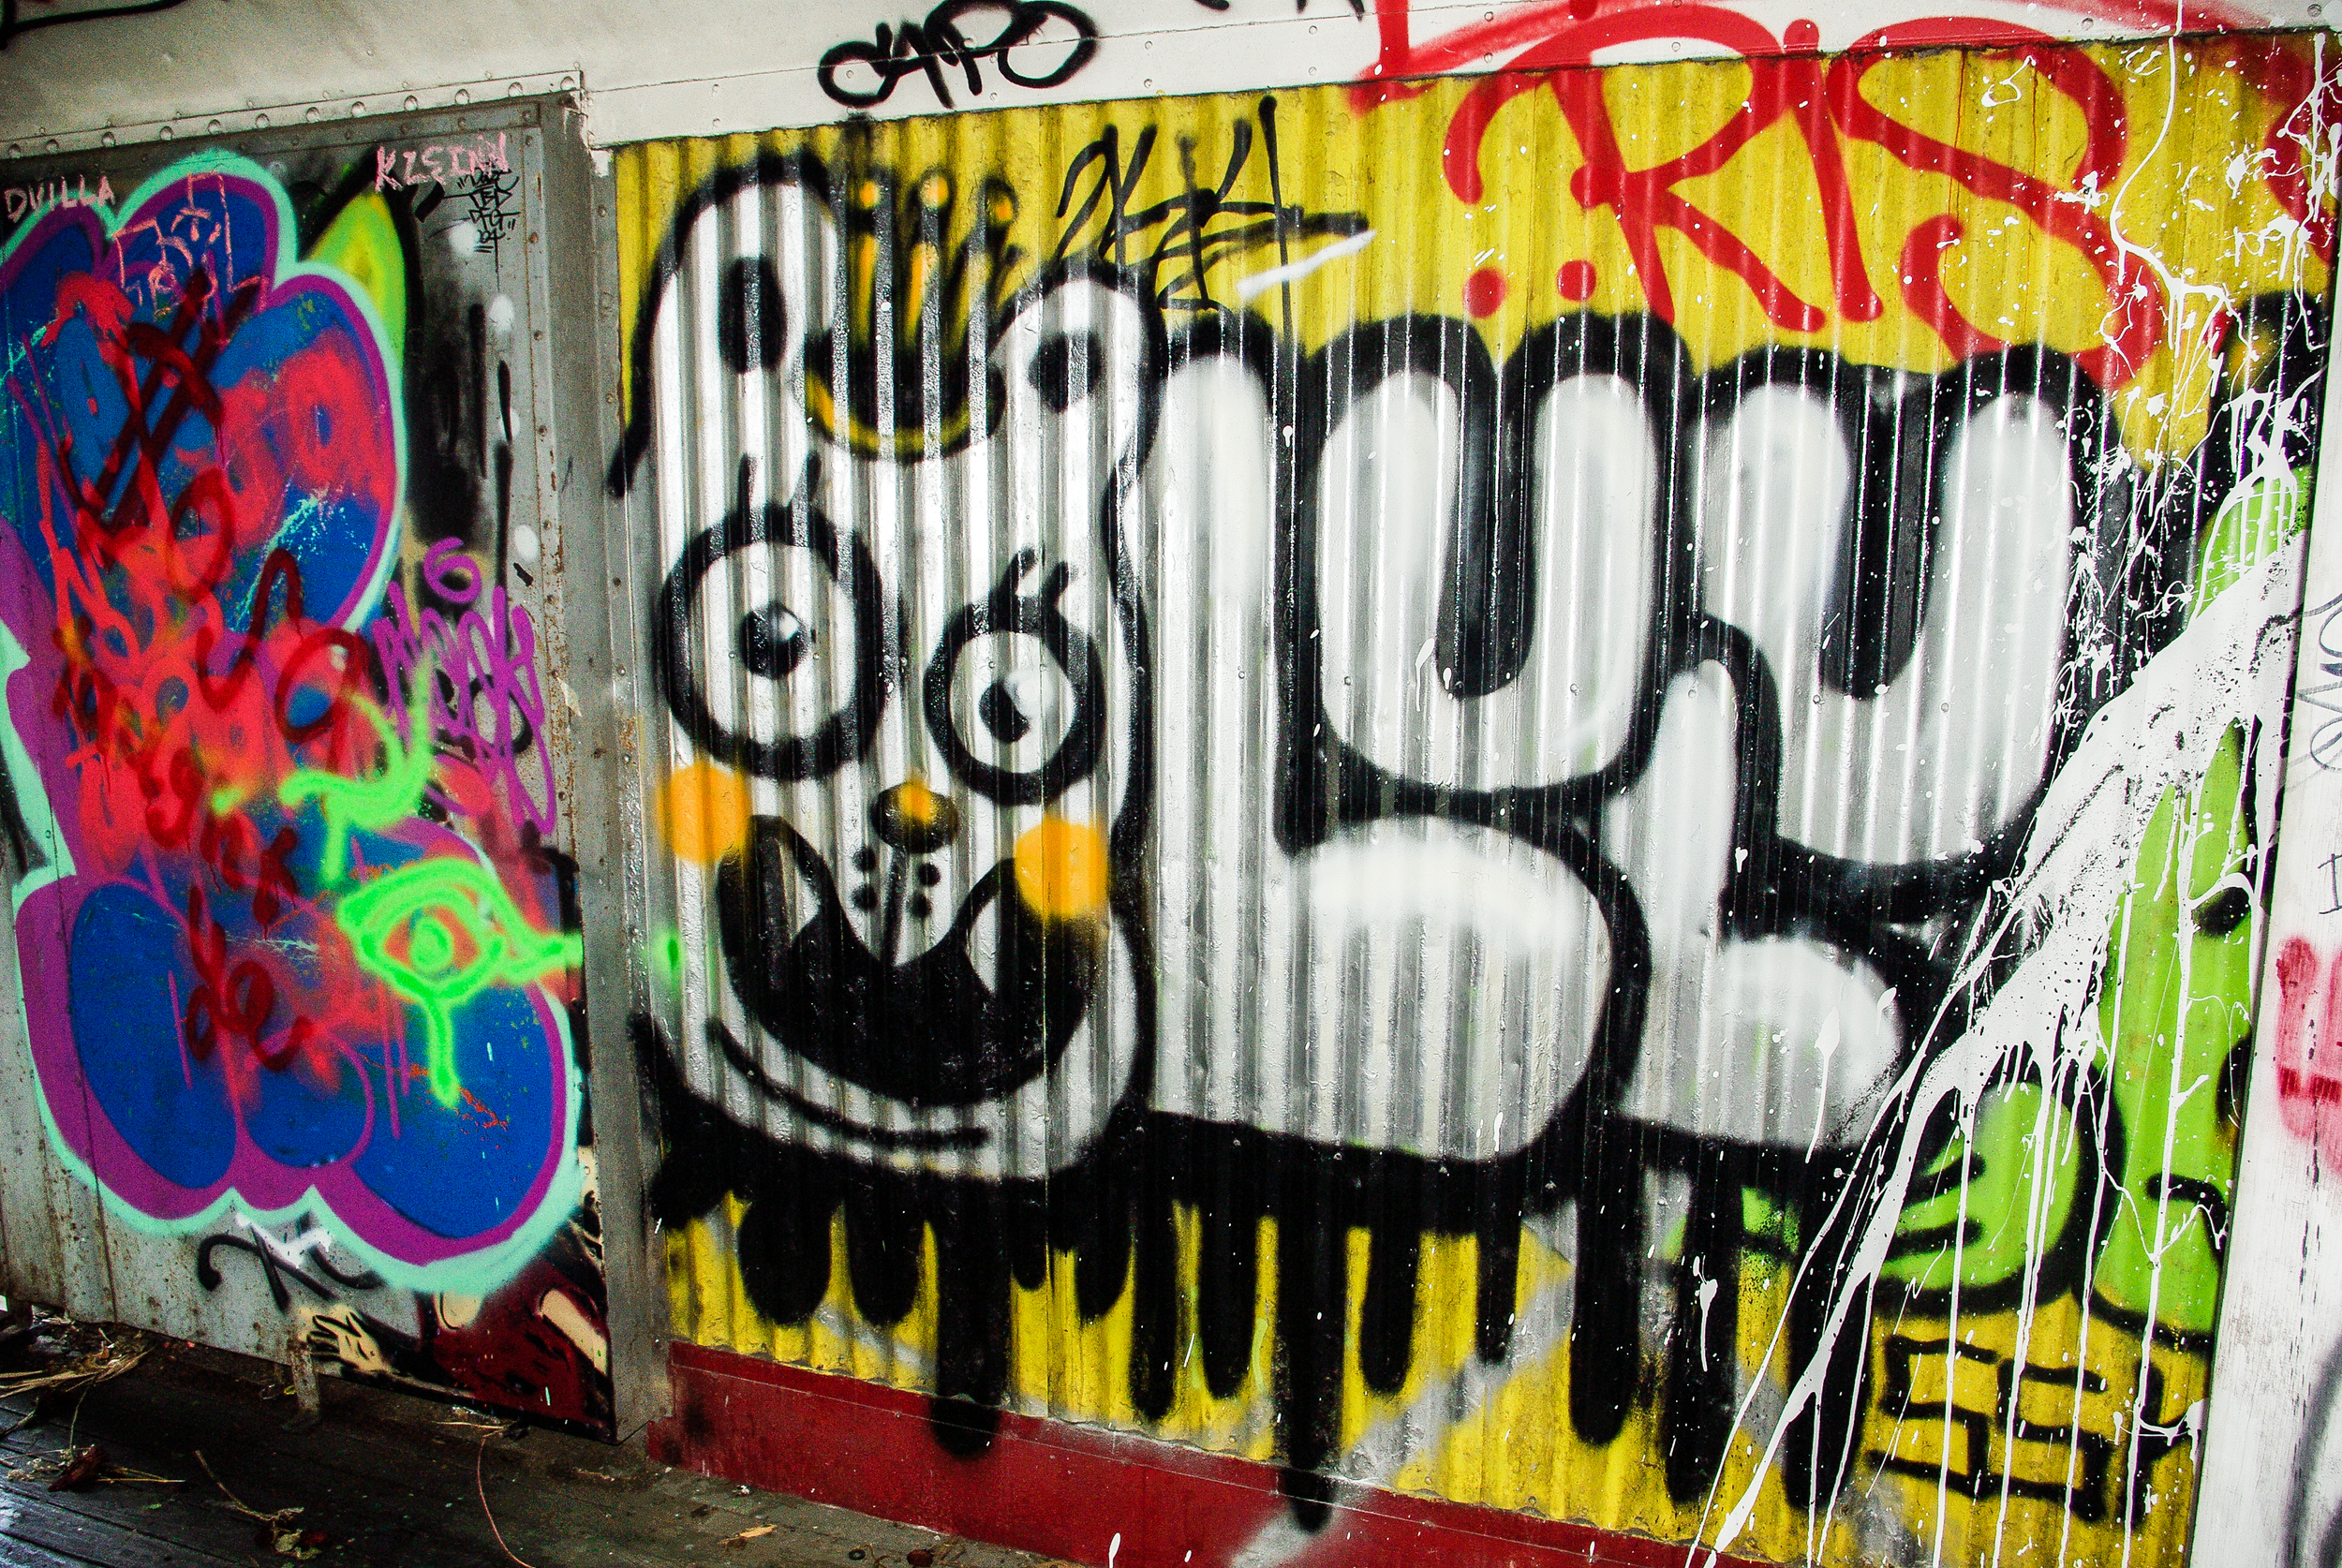 Abandoned Train Car Graffiti #5.jpg